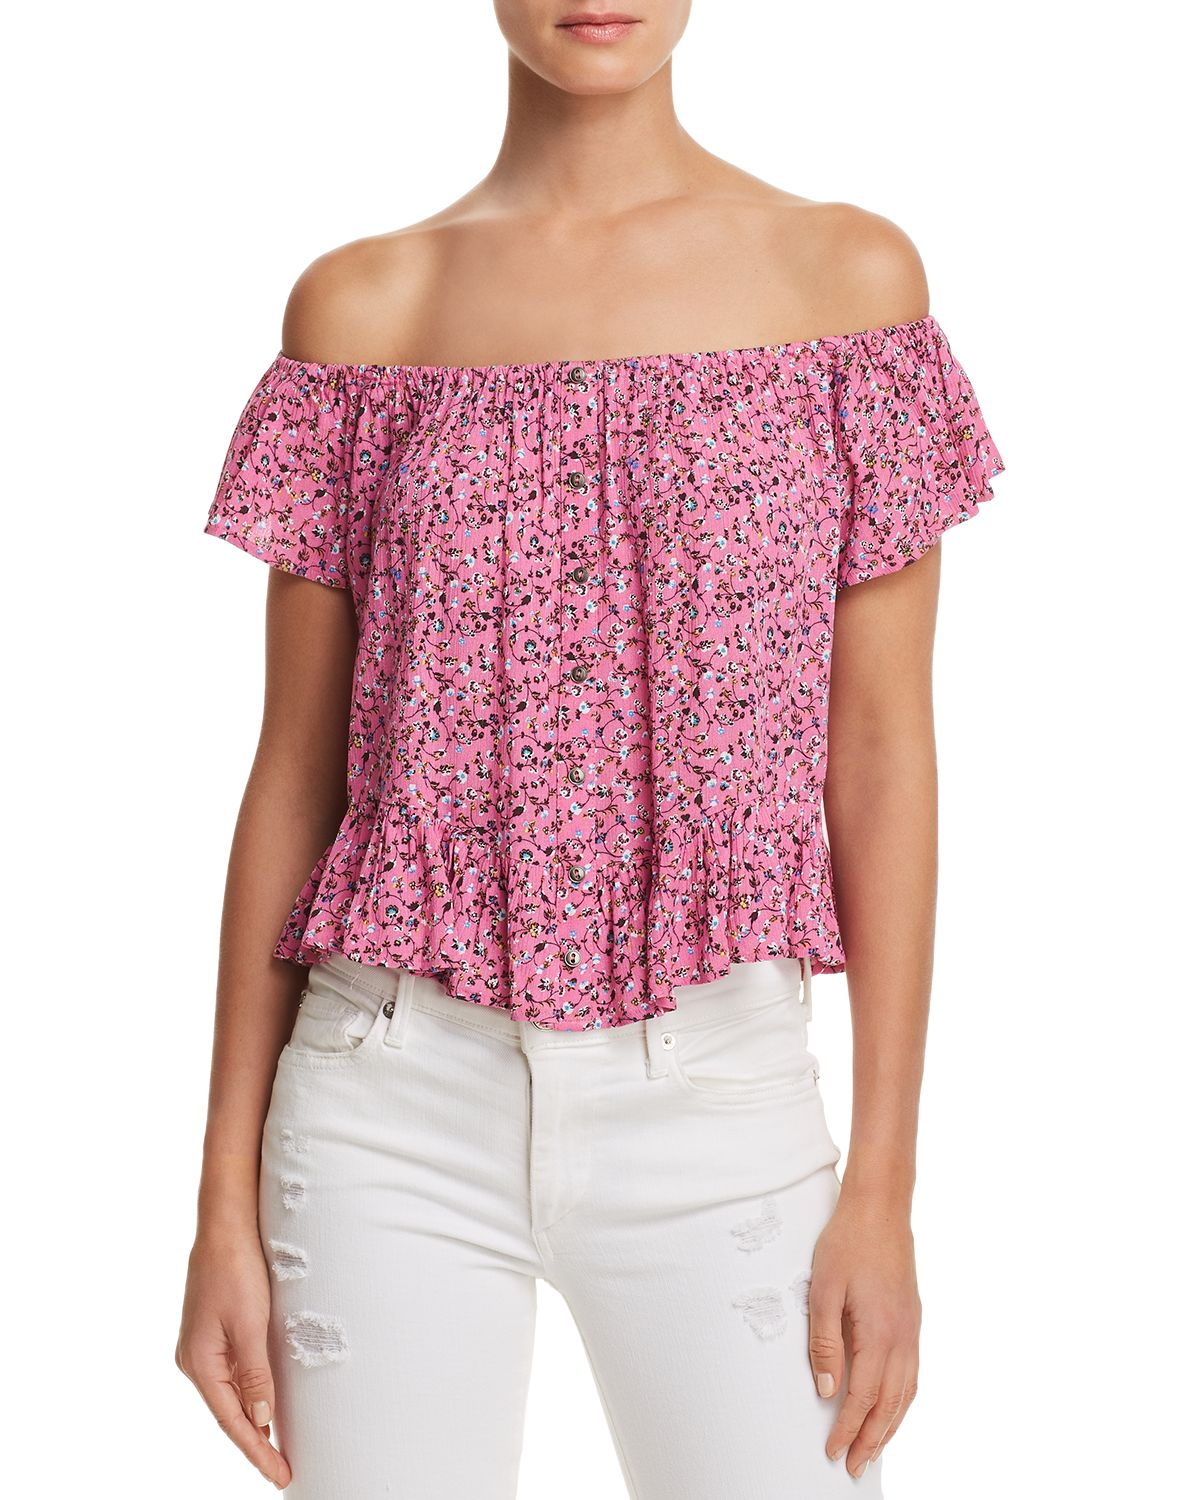 Ditsy Floral Print Off The Shoulder Top   100 Percents Exclusive by En Créme